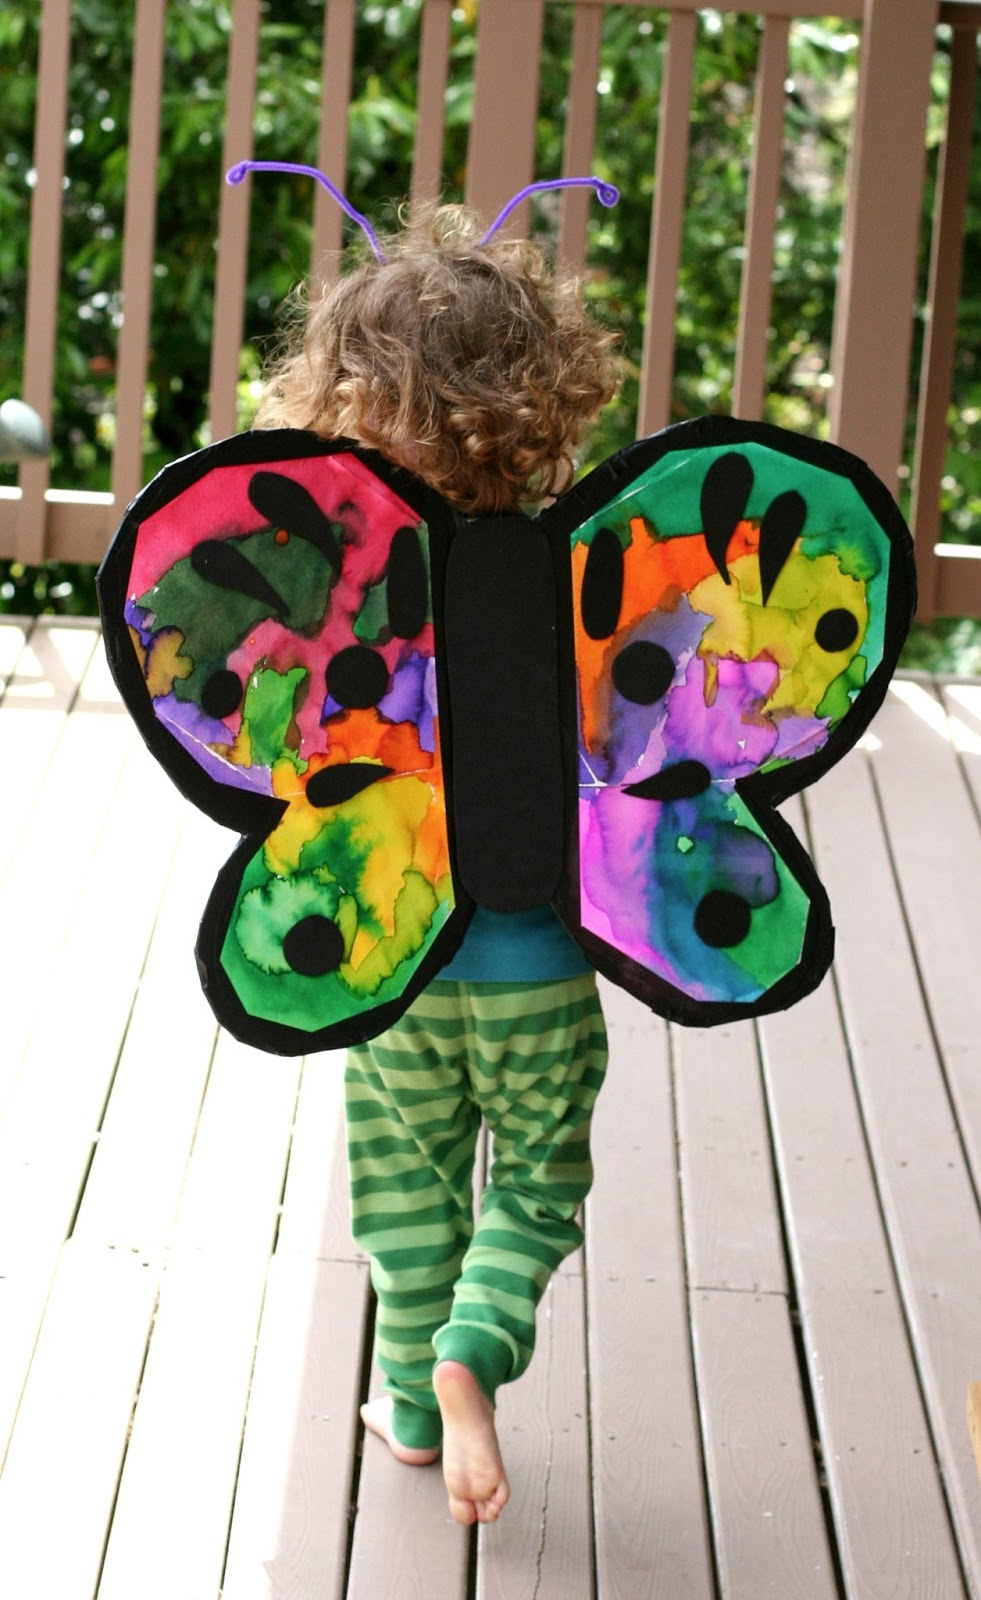 How to Make Cardboard Butterfly Wings